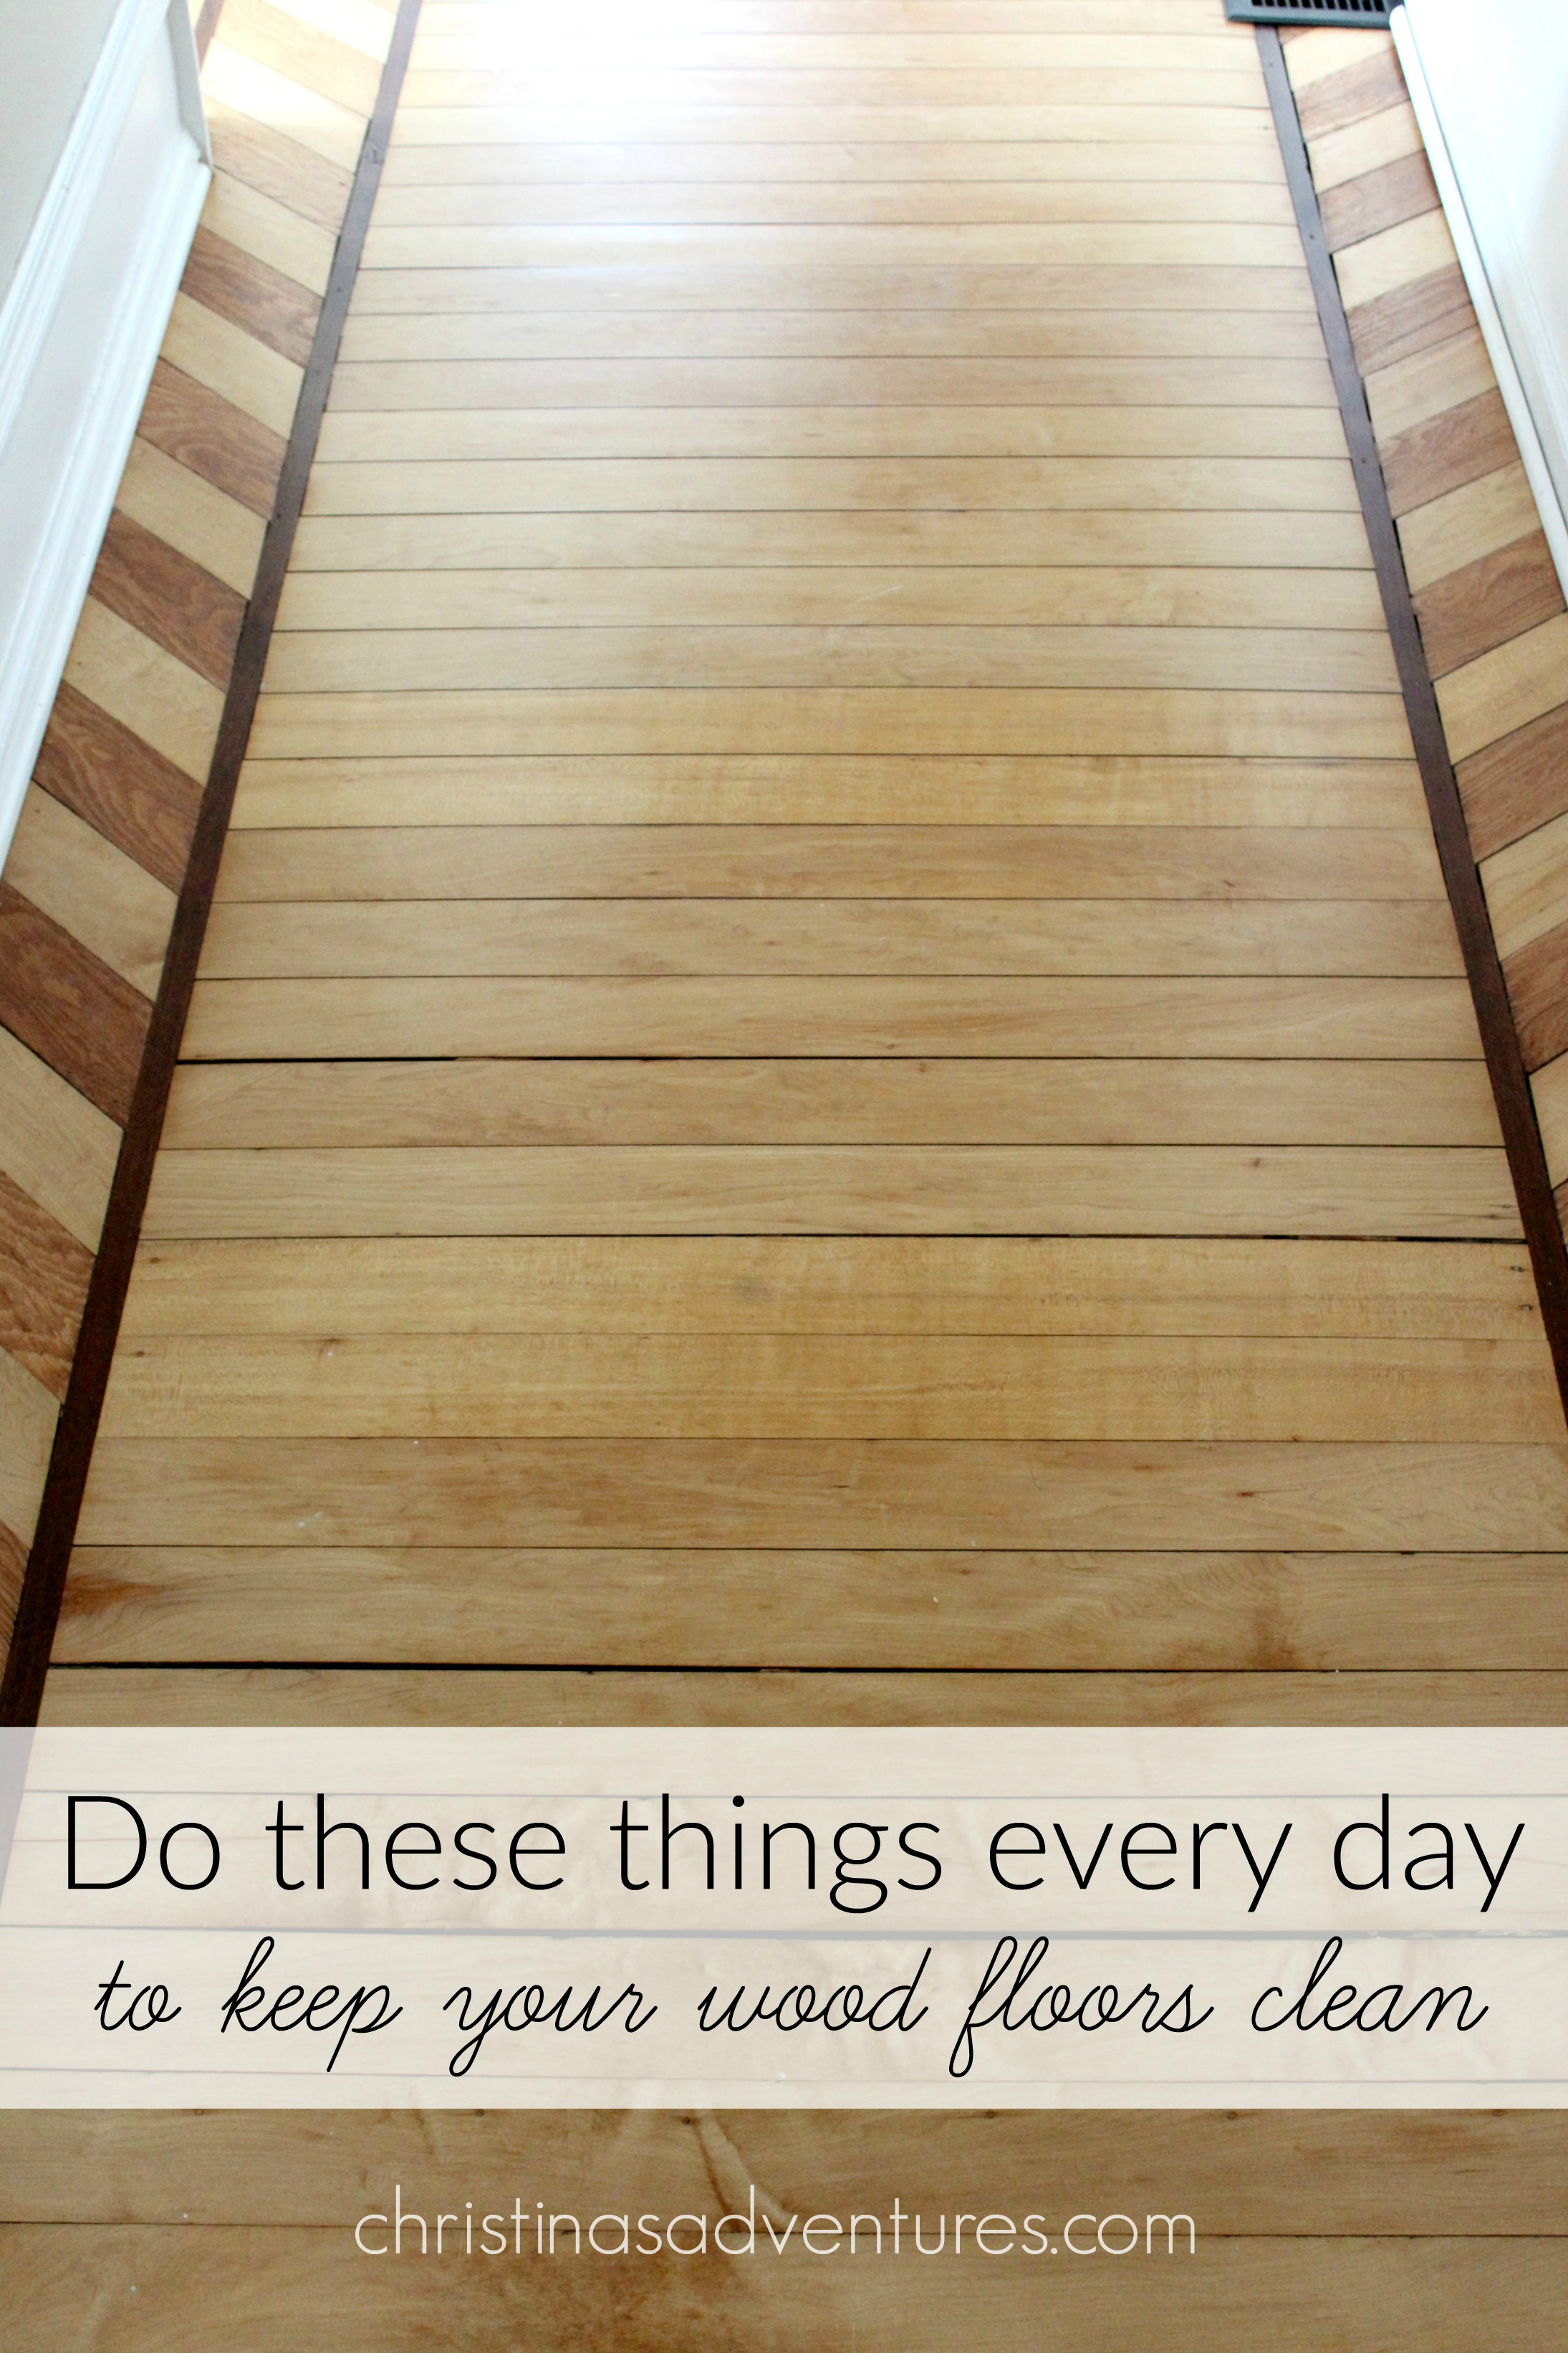 Do these things every day to keep your wood floors clean